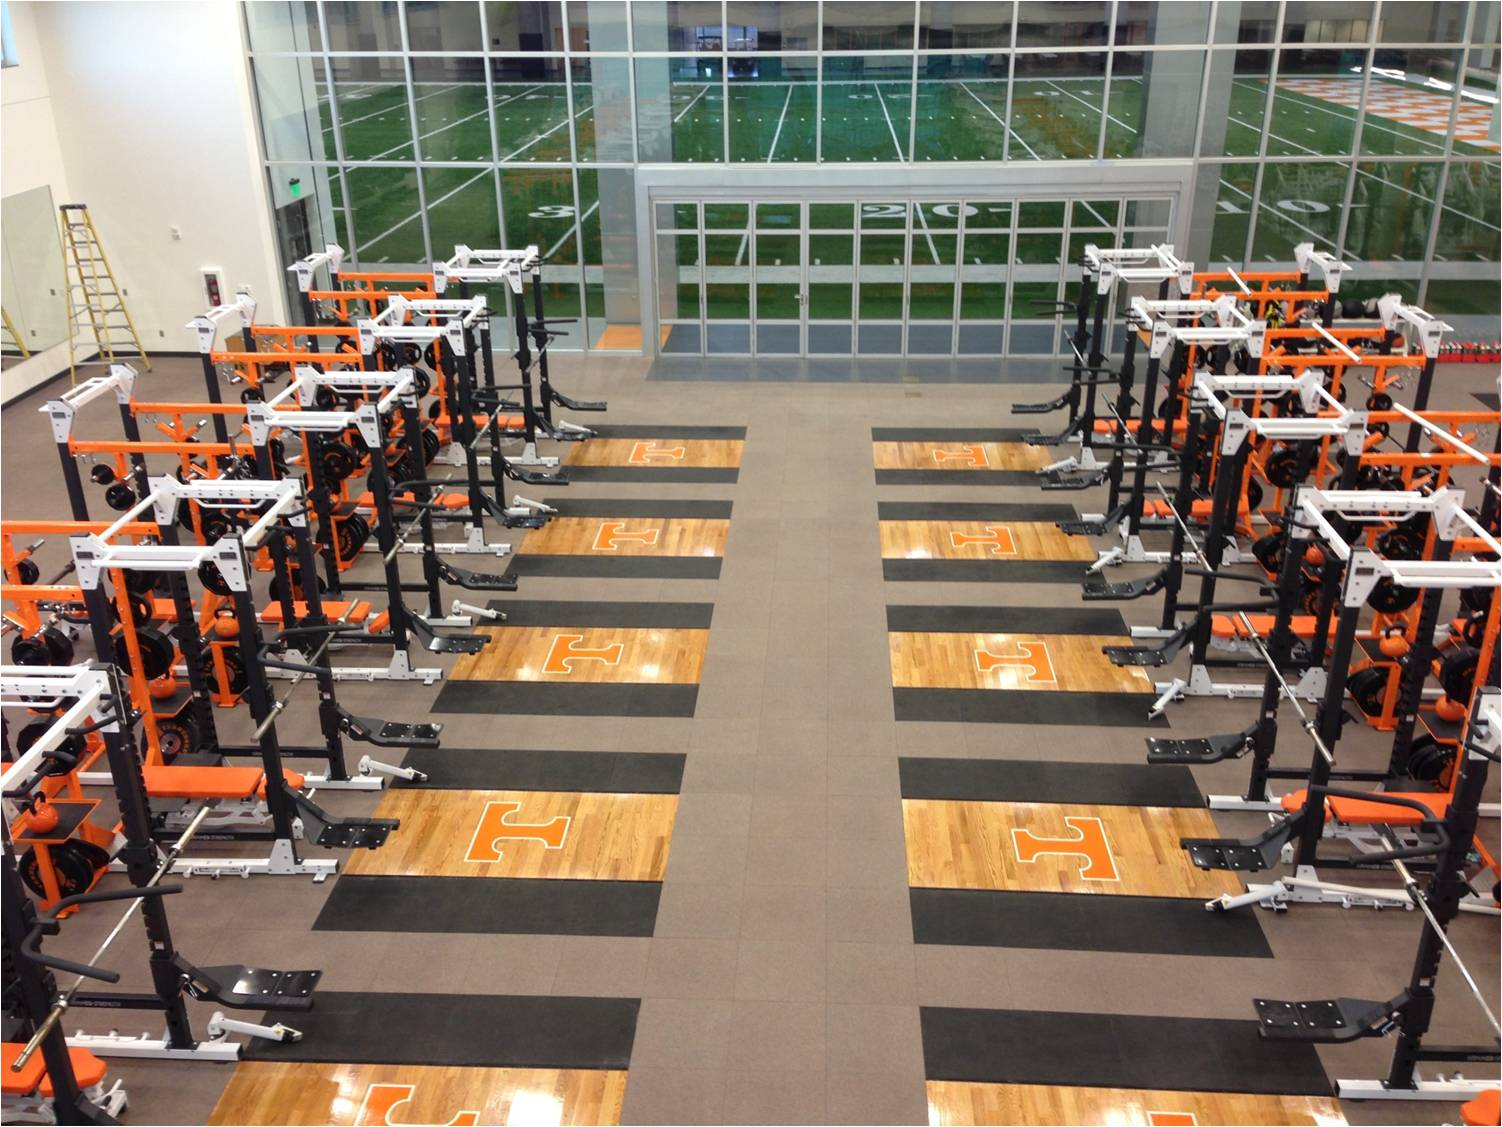 42-Weight-Room-Tennessee.jpg